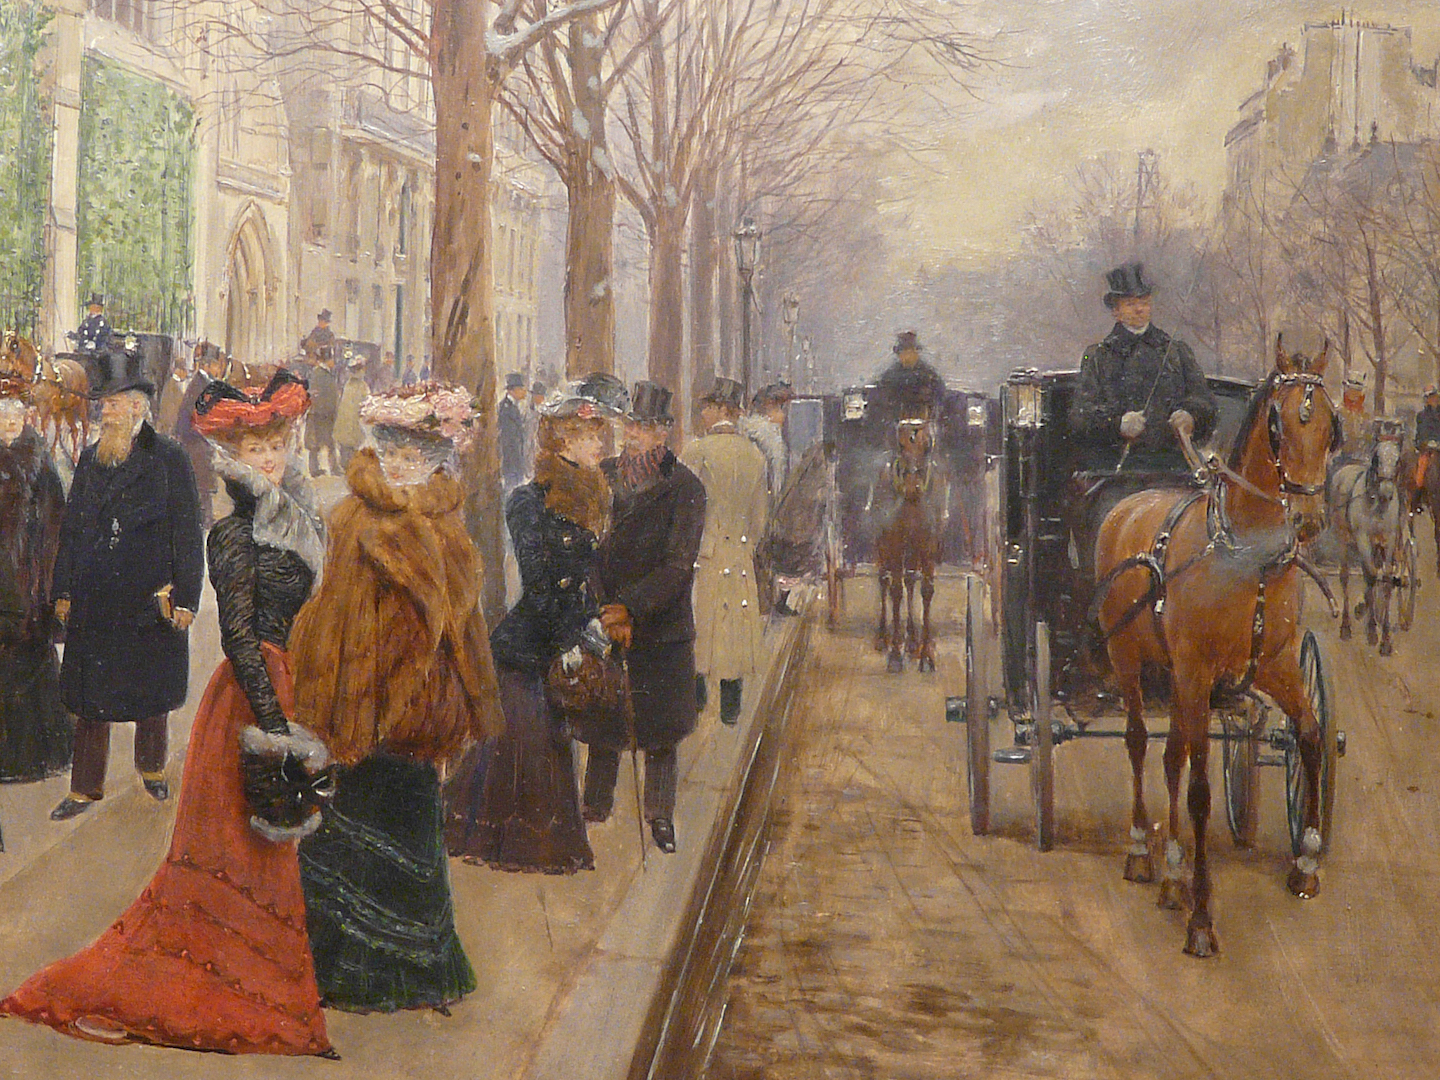 A detail from Jean Georges Béraud's